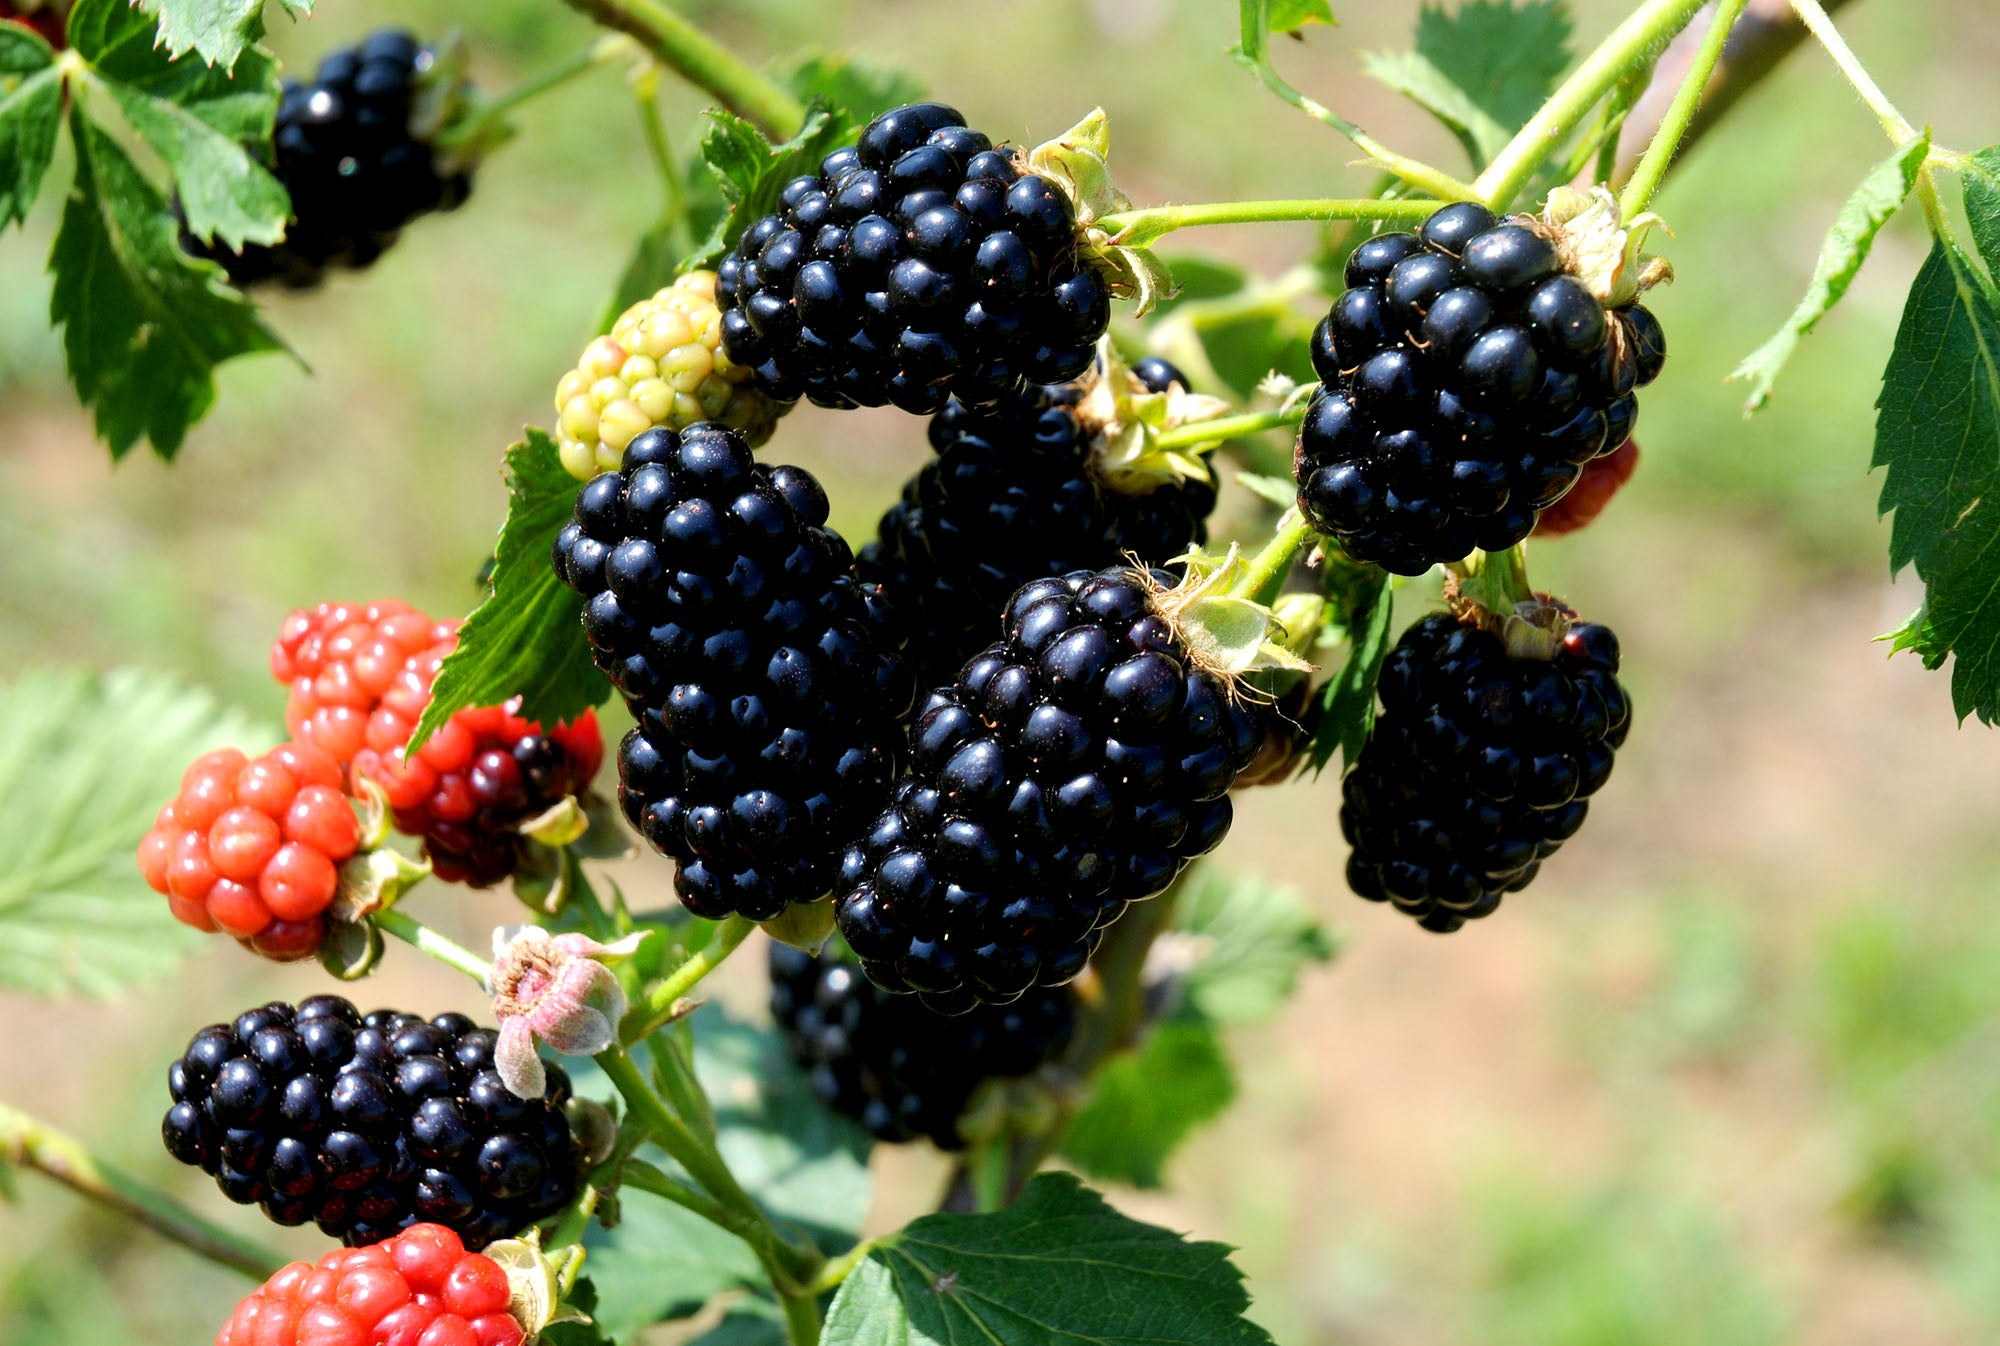 (1 Gallon Bareroot Plant)      Blackberry Shawnee, Heavy Producer Throughout the Season. Fruit Are Medium to Large in Size, Good Flavor, and an Average Sugar Content of 9-11% (1 Gallon Bareroot Plant)